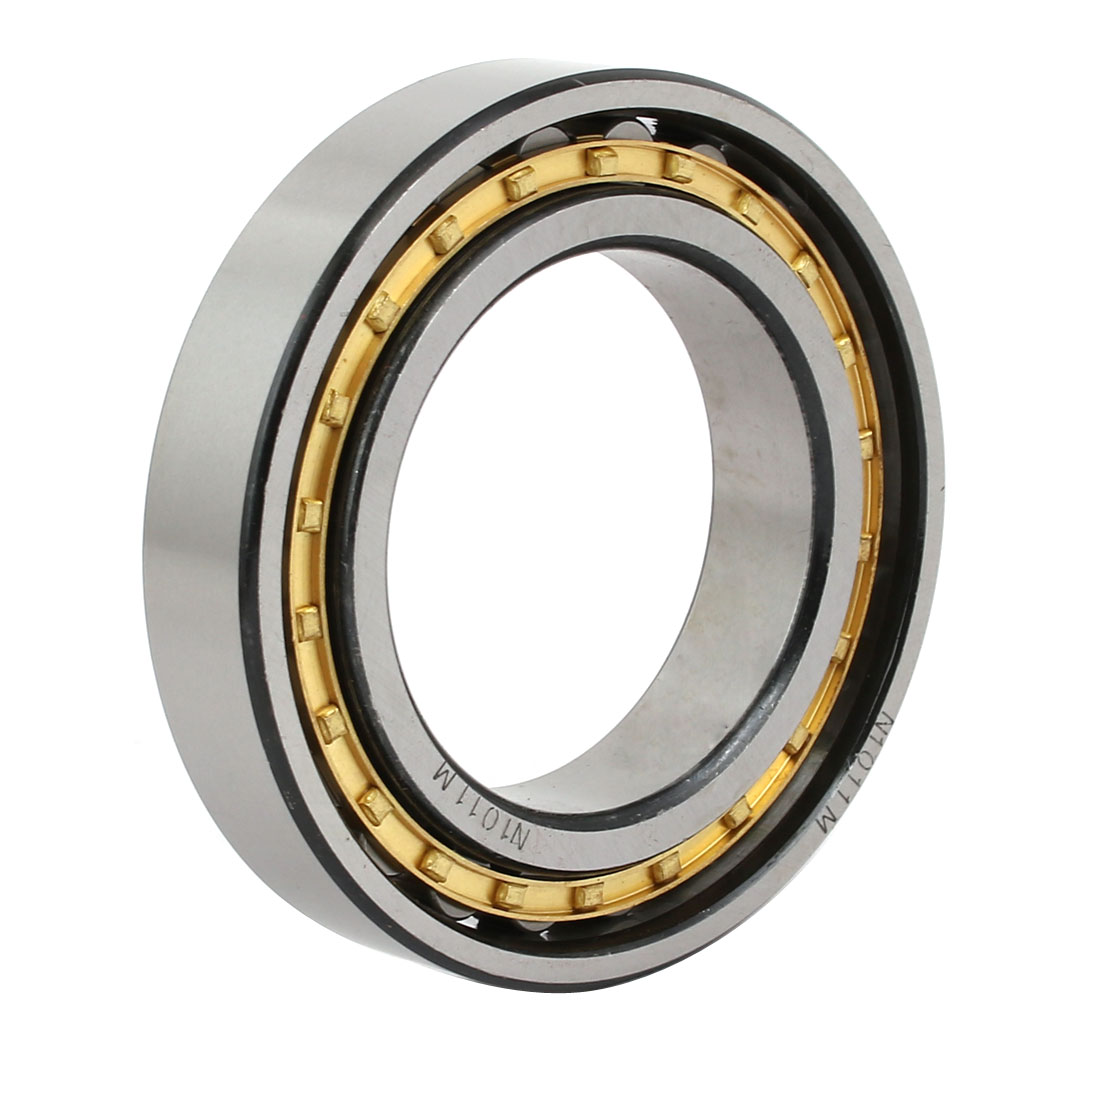 N1011M 90mmx55mmx18mm Single Row Cylindrical Roller Bearing